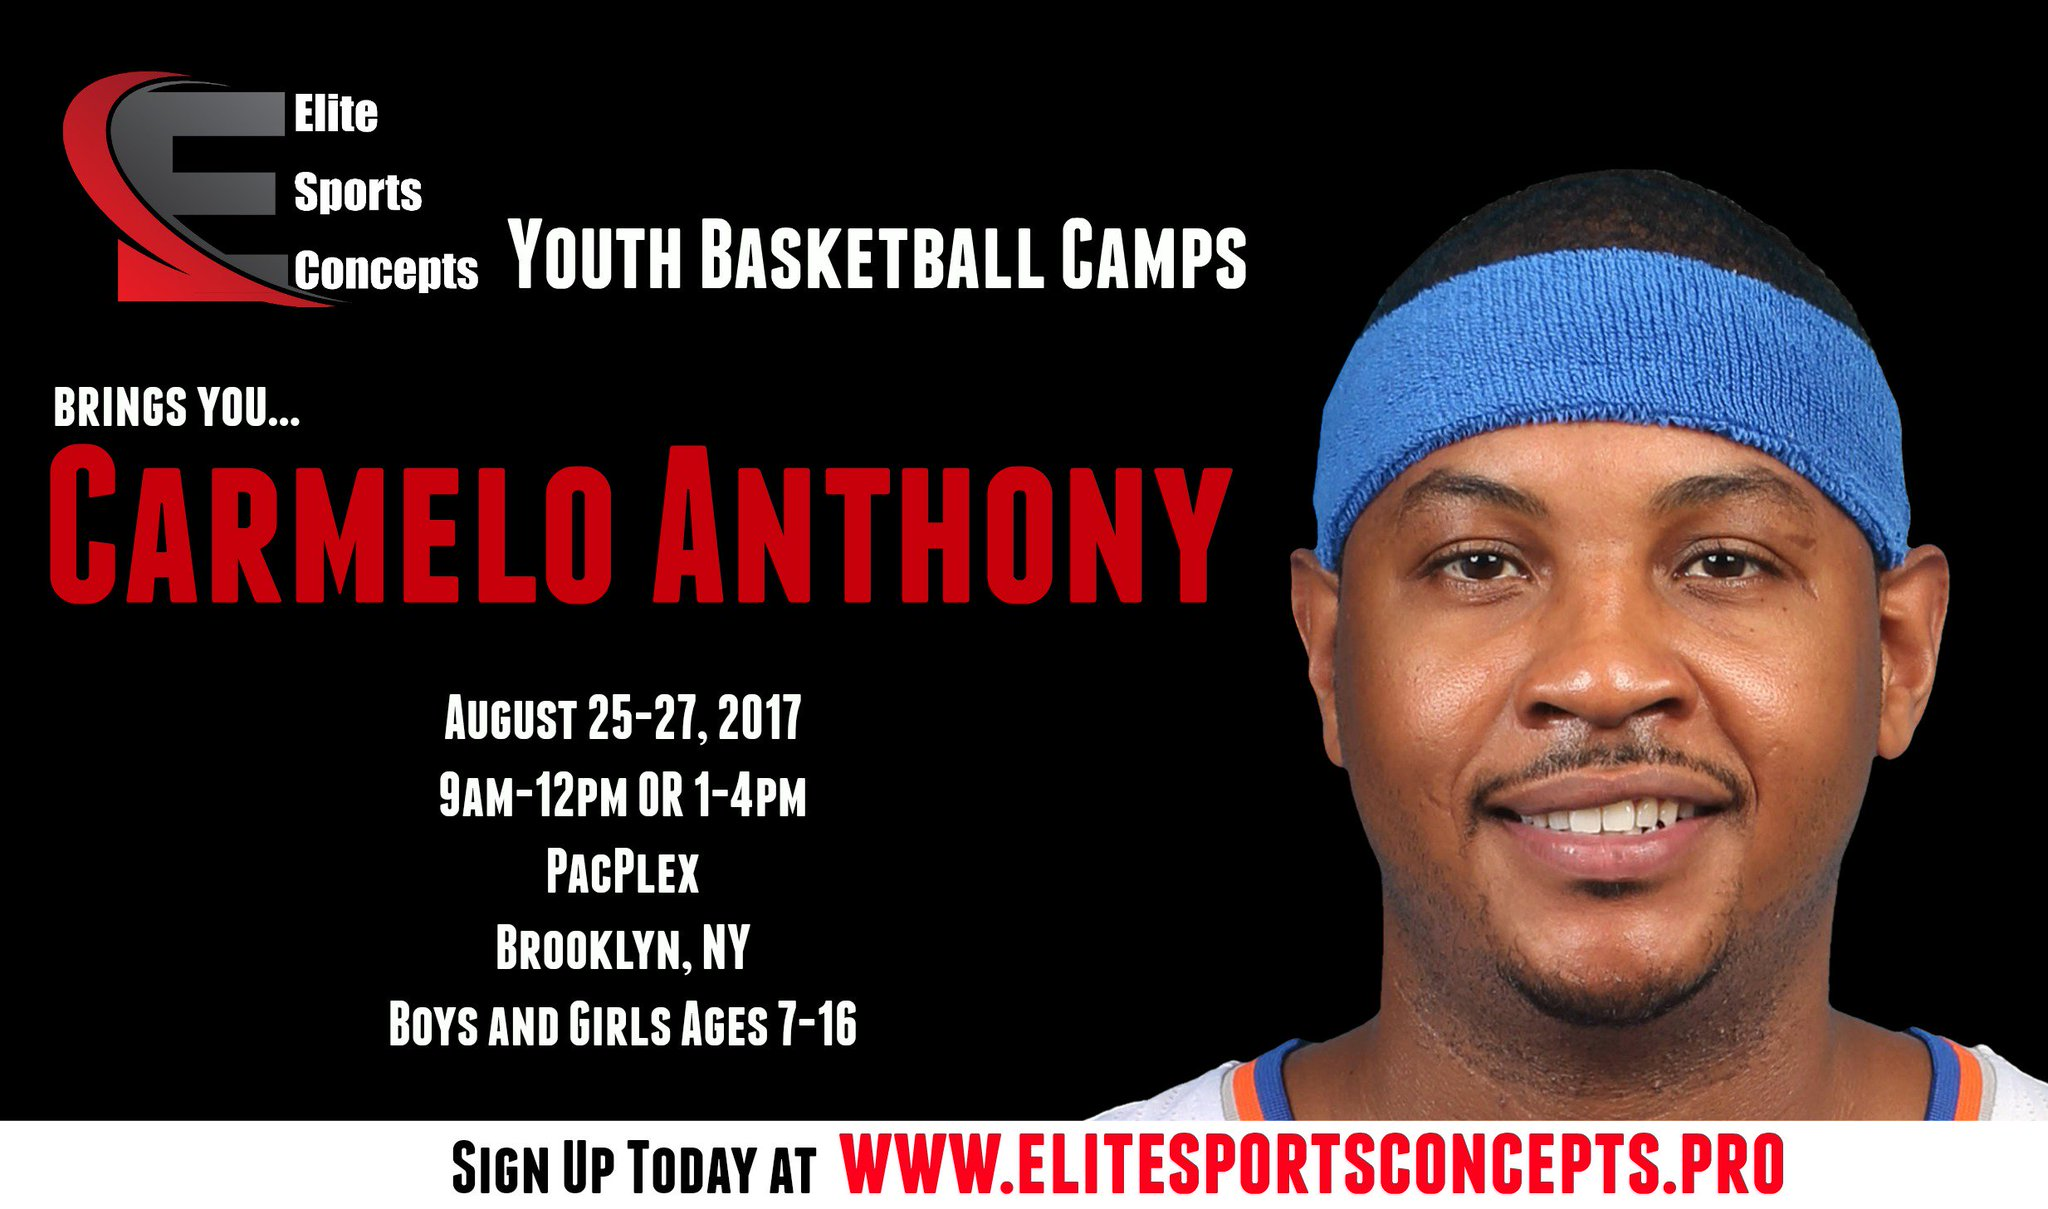 Excited to announce my upcoming @EliteSportsCon2 Youth Basketball Camp in BKLYN! Sign up now https://t.co/Snk8vXUvfM https://t.co/FQQY7qmrDg